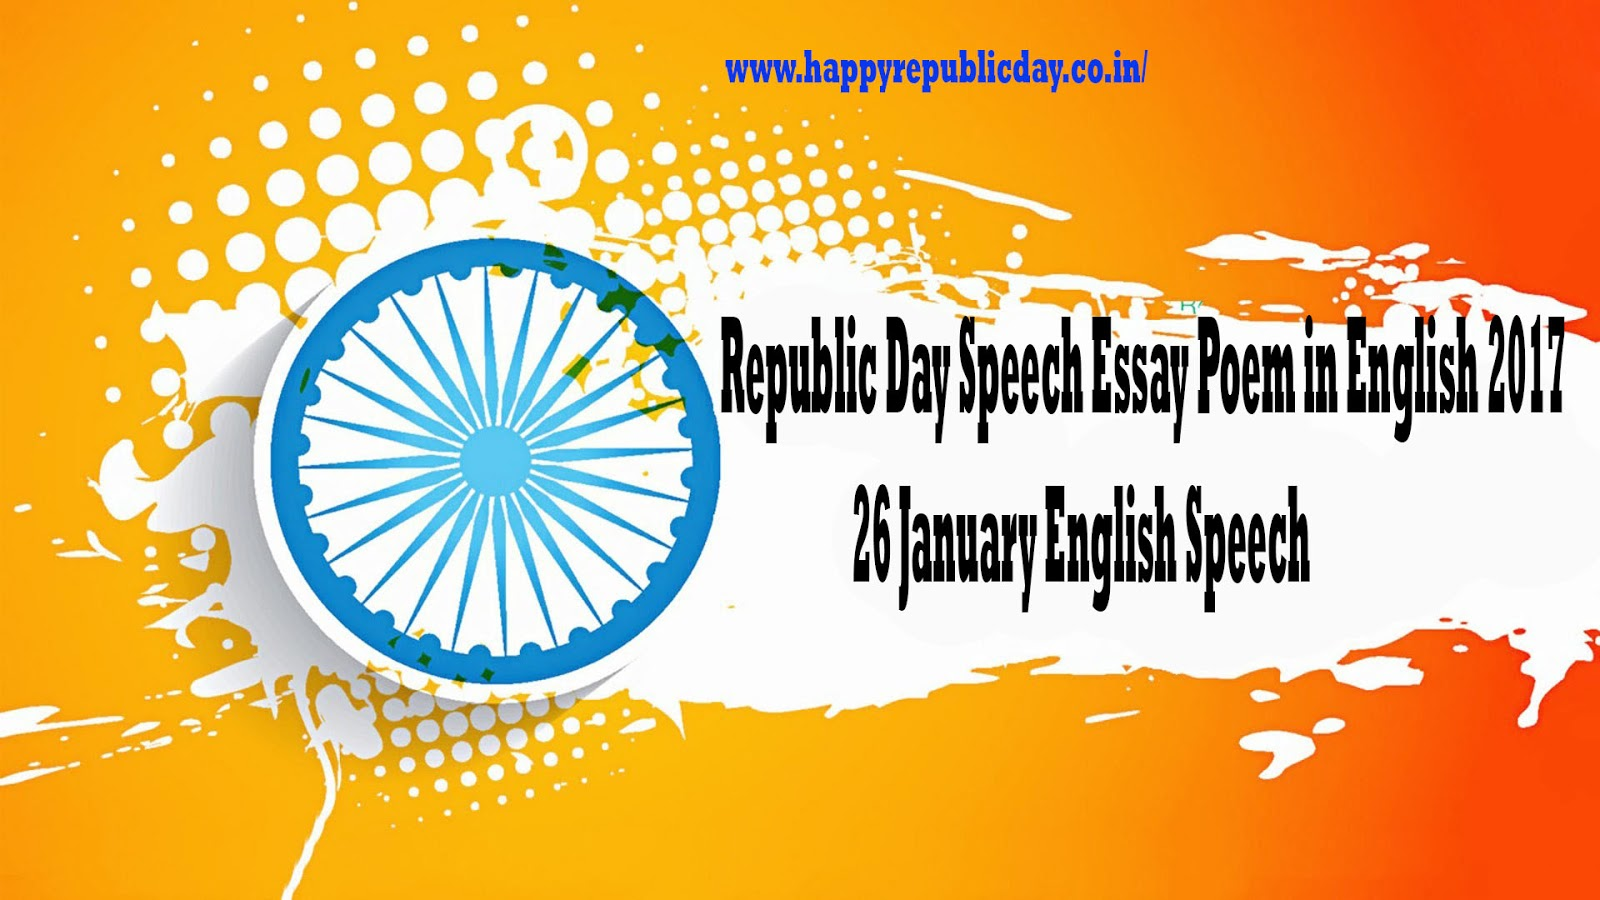 republic day speech essay poem in english  republic day speech essay poem in english 2017 26 english speech